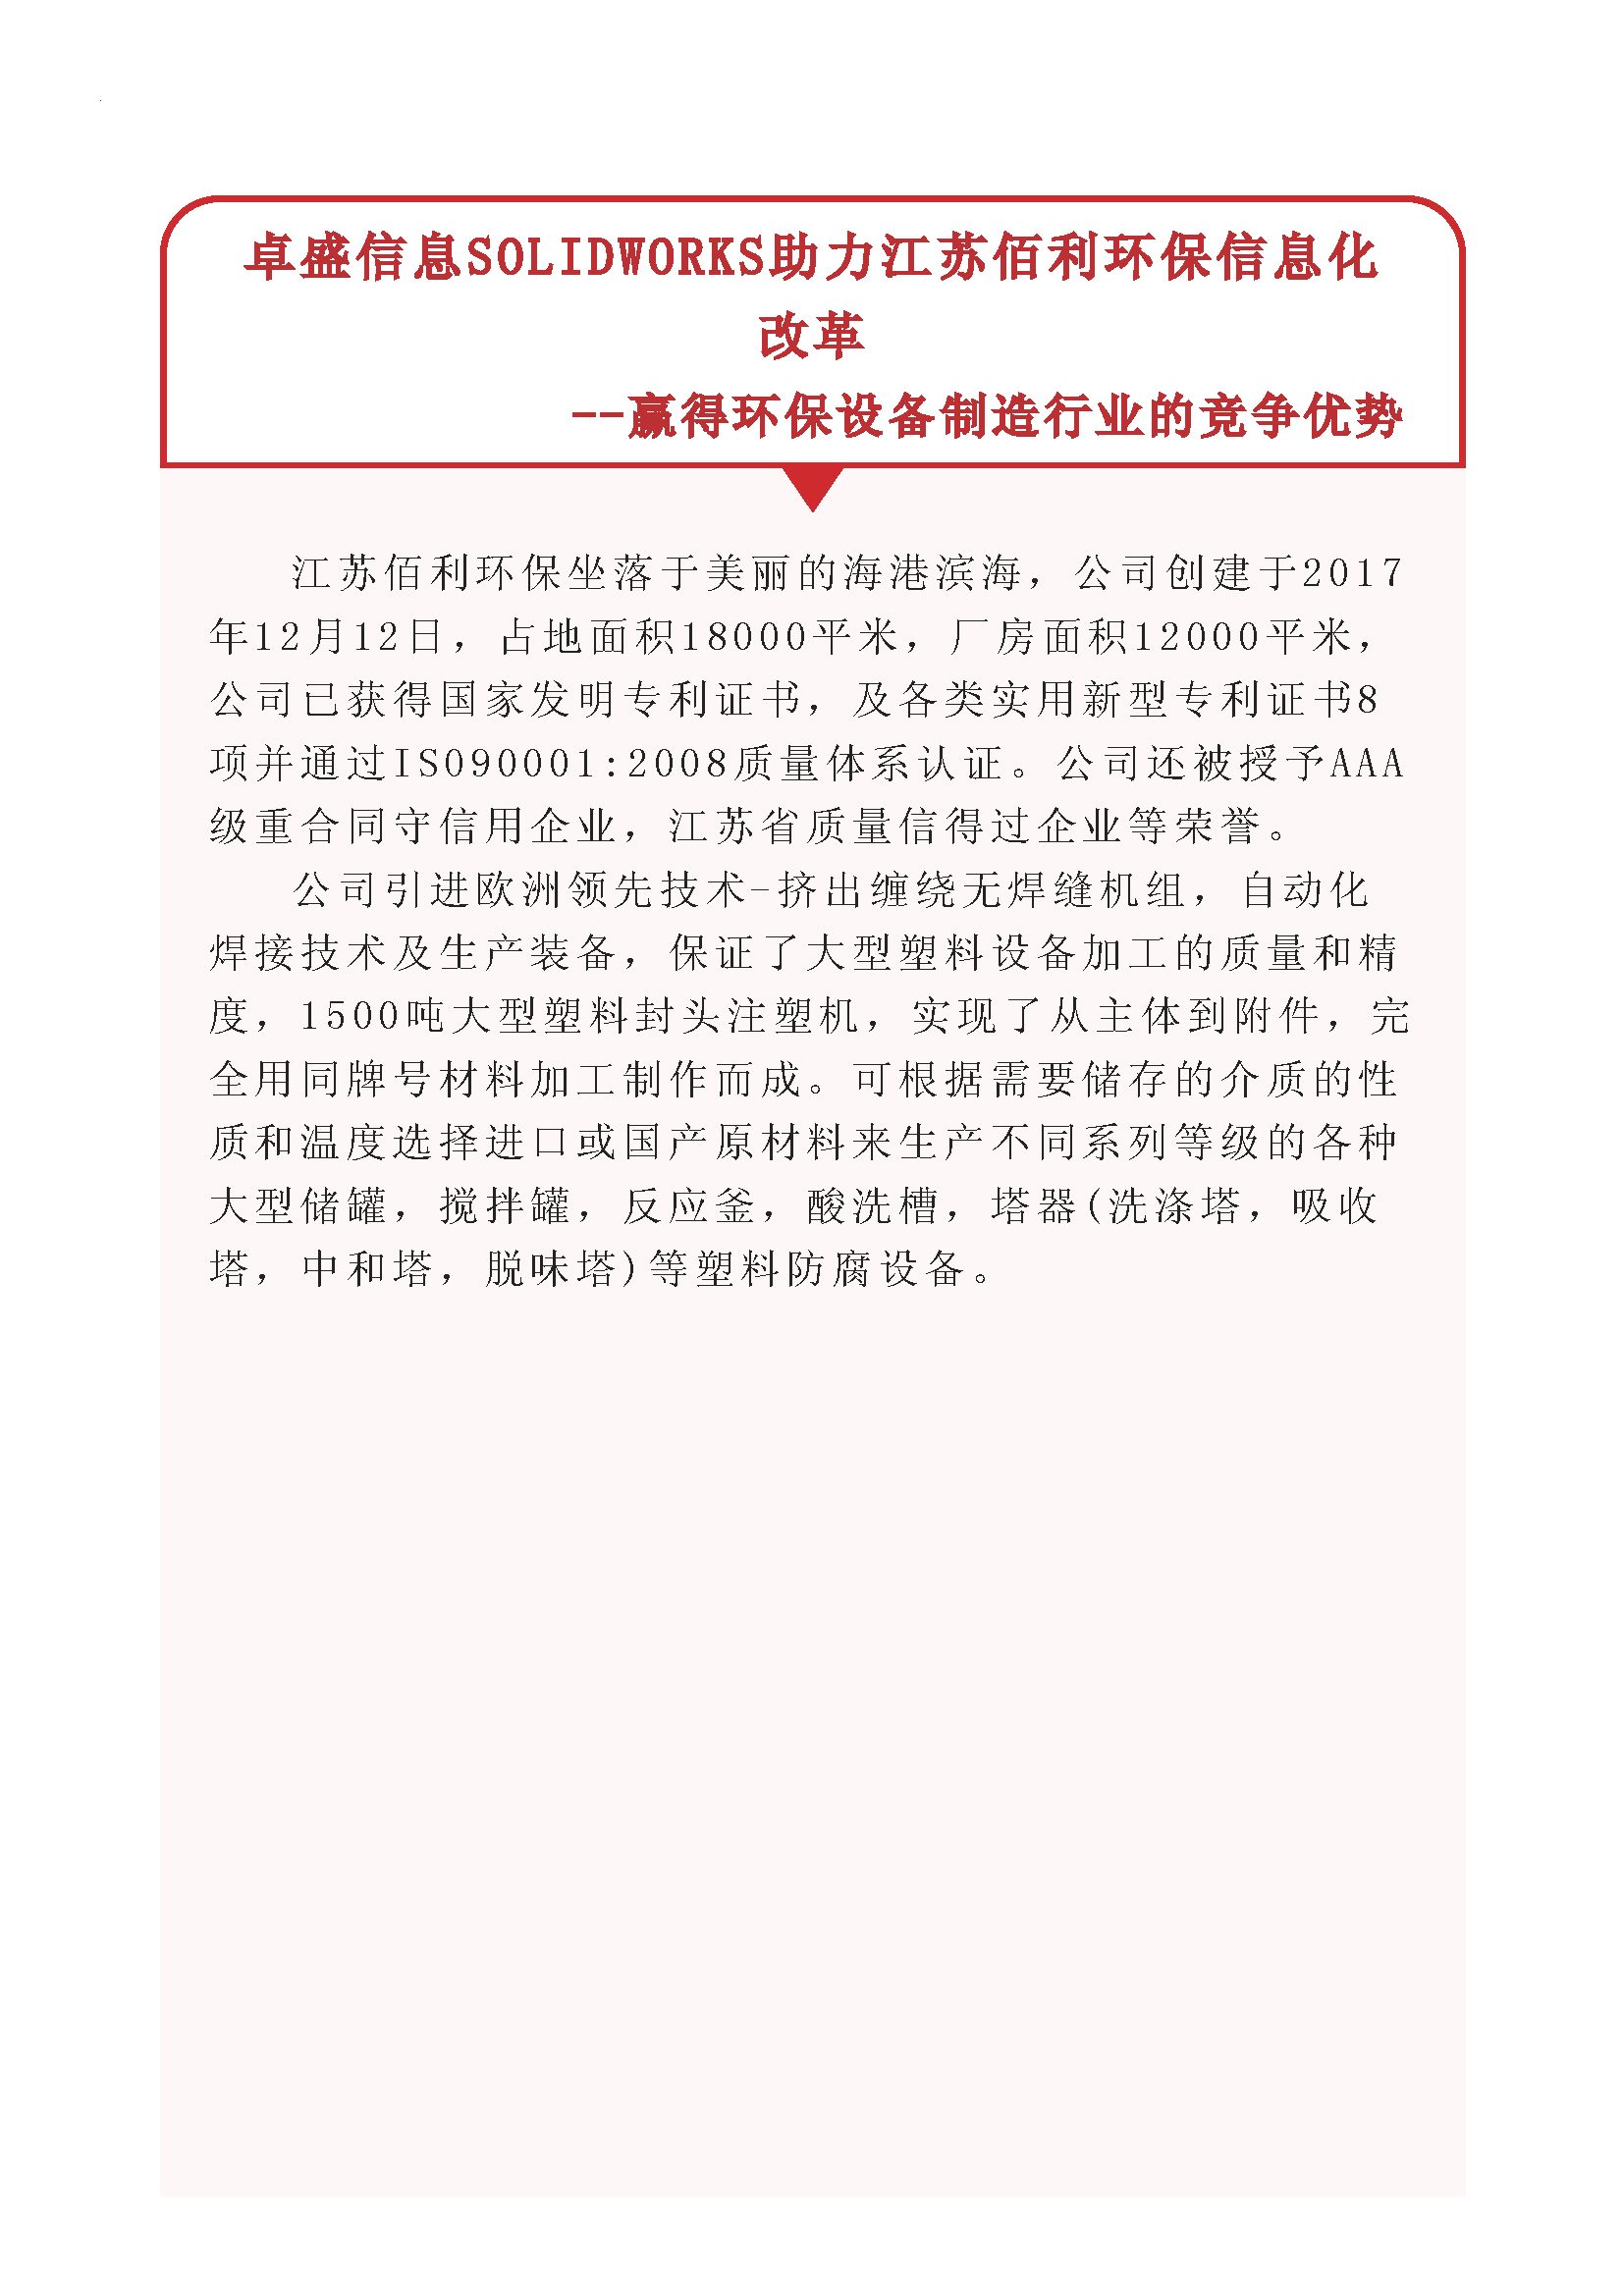 135editor_03041424_60407d0a640ba20210304142410_页面_01.png